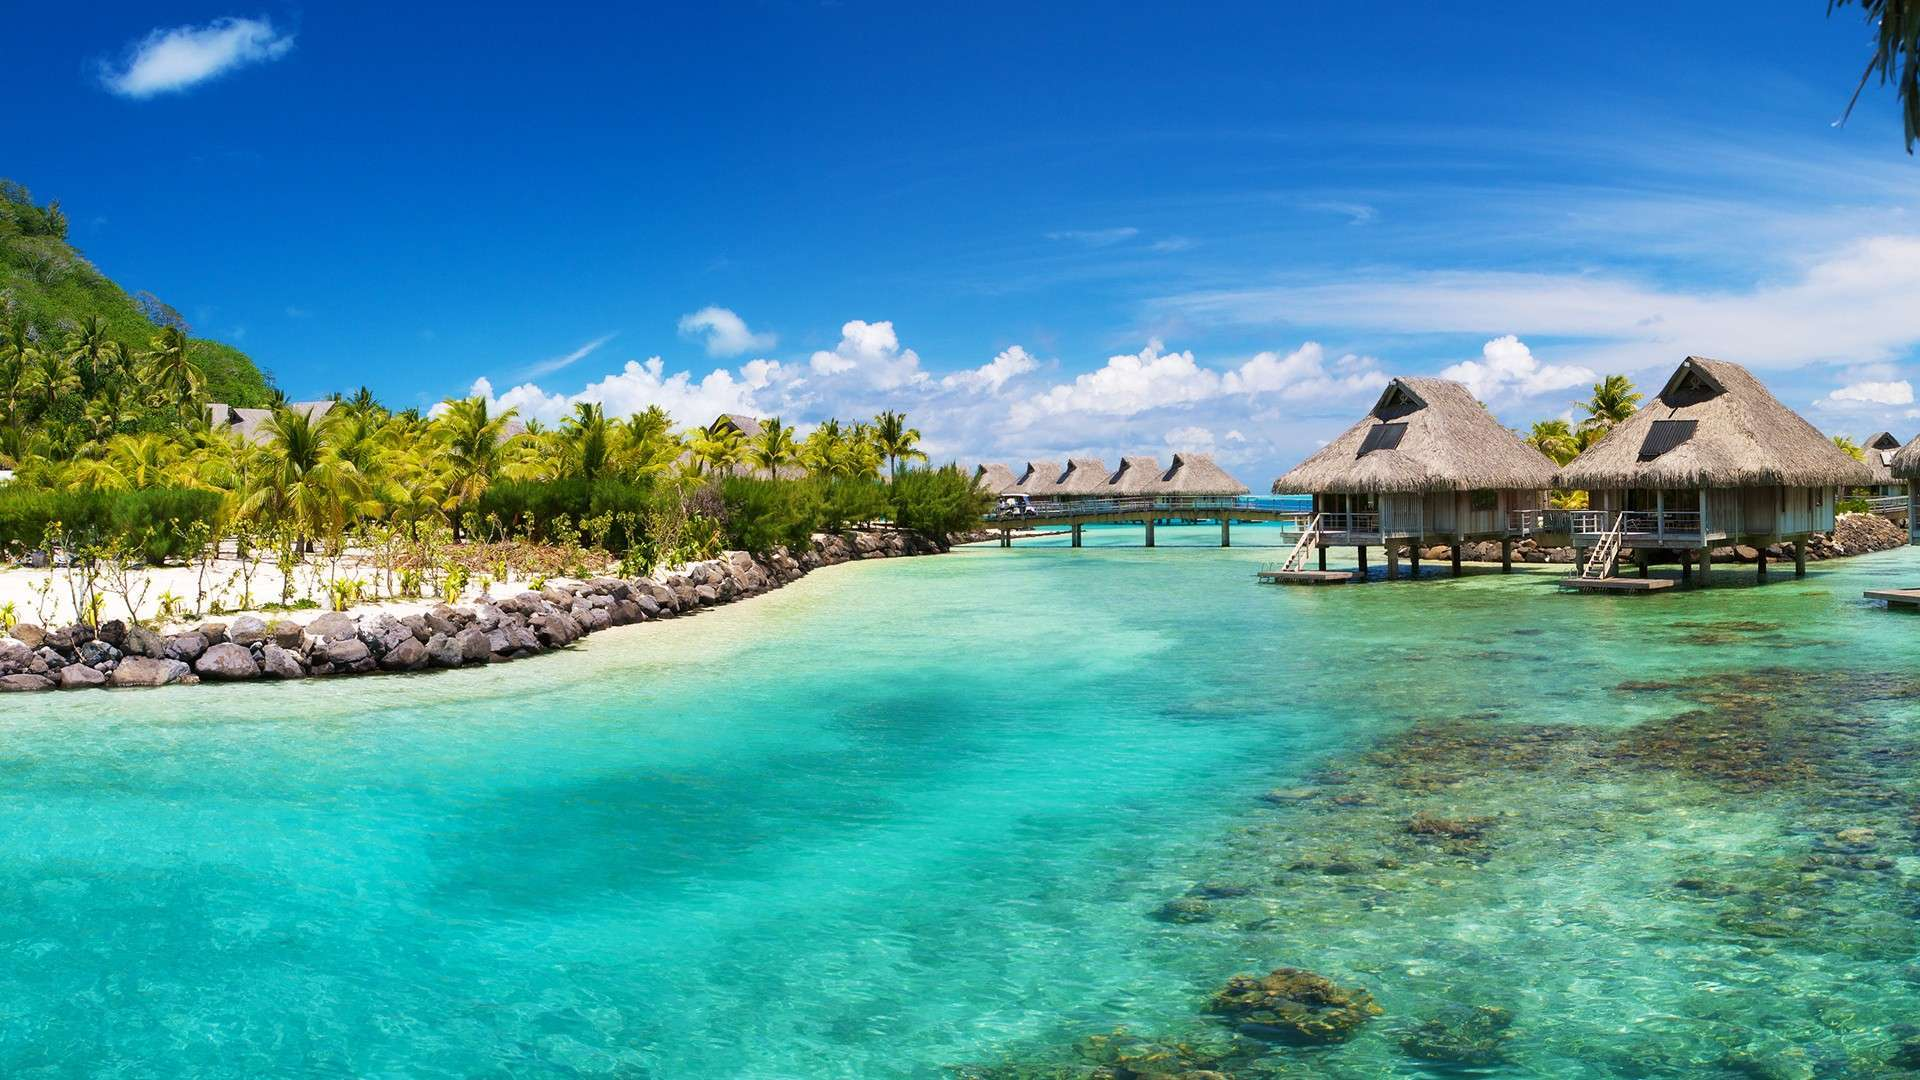 Tropical Island Wallpaper 8541 Hd Wallpapers in Beach   Imagescicom 1920x1080